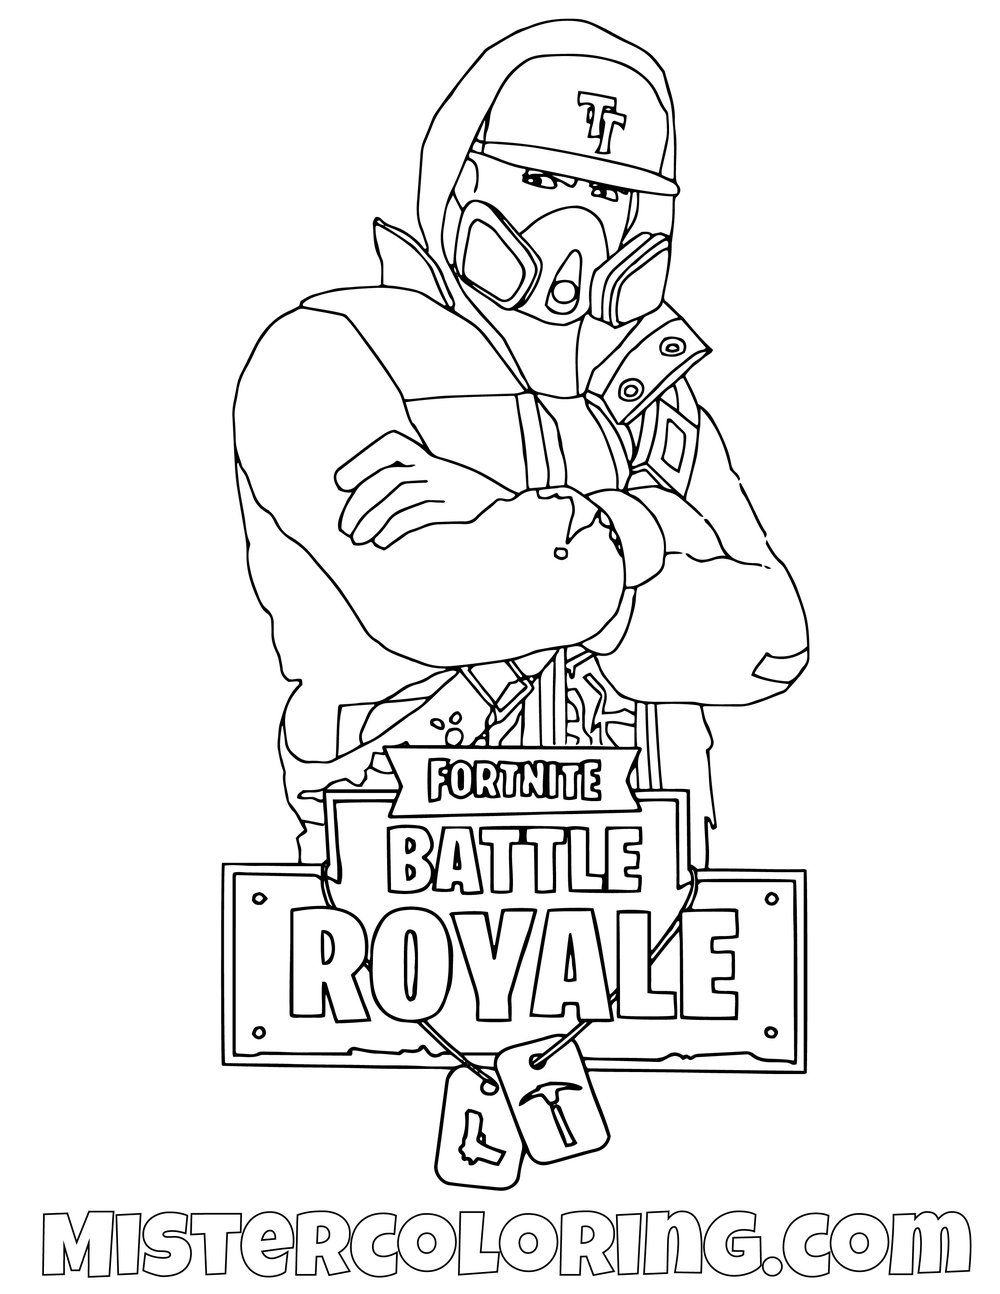 Free Black Knight Posing Skin Fortnite Coloring Page For Kids